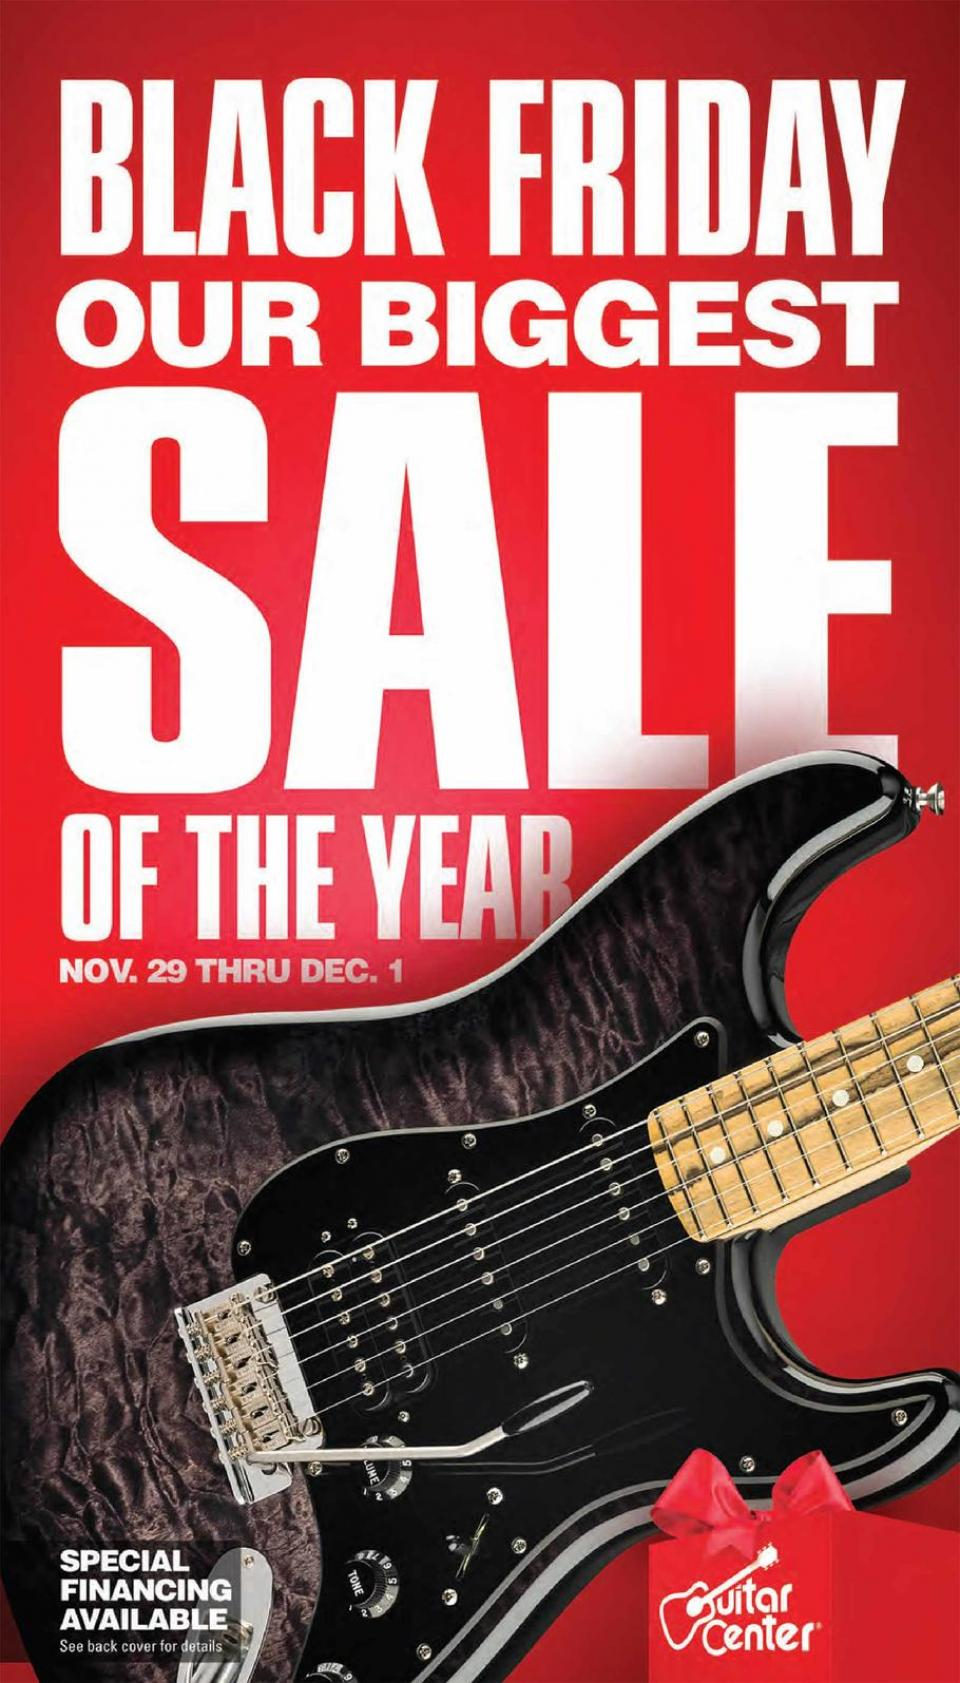 Guitar Centerblack friday ad